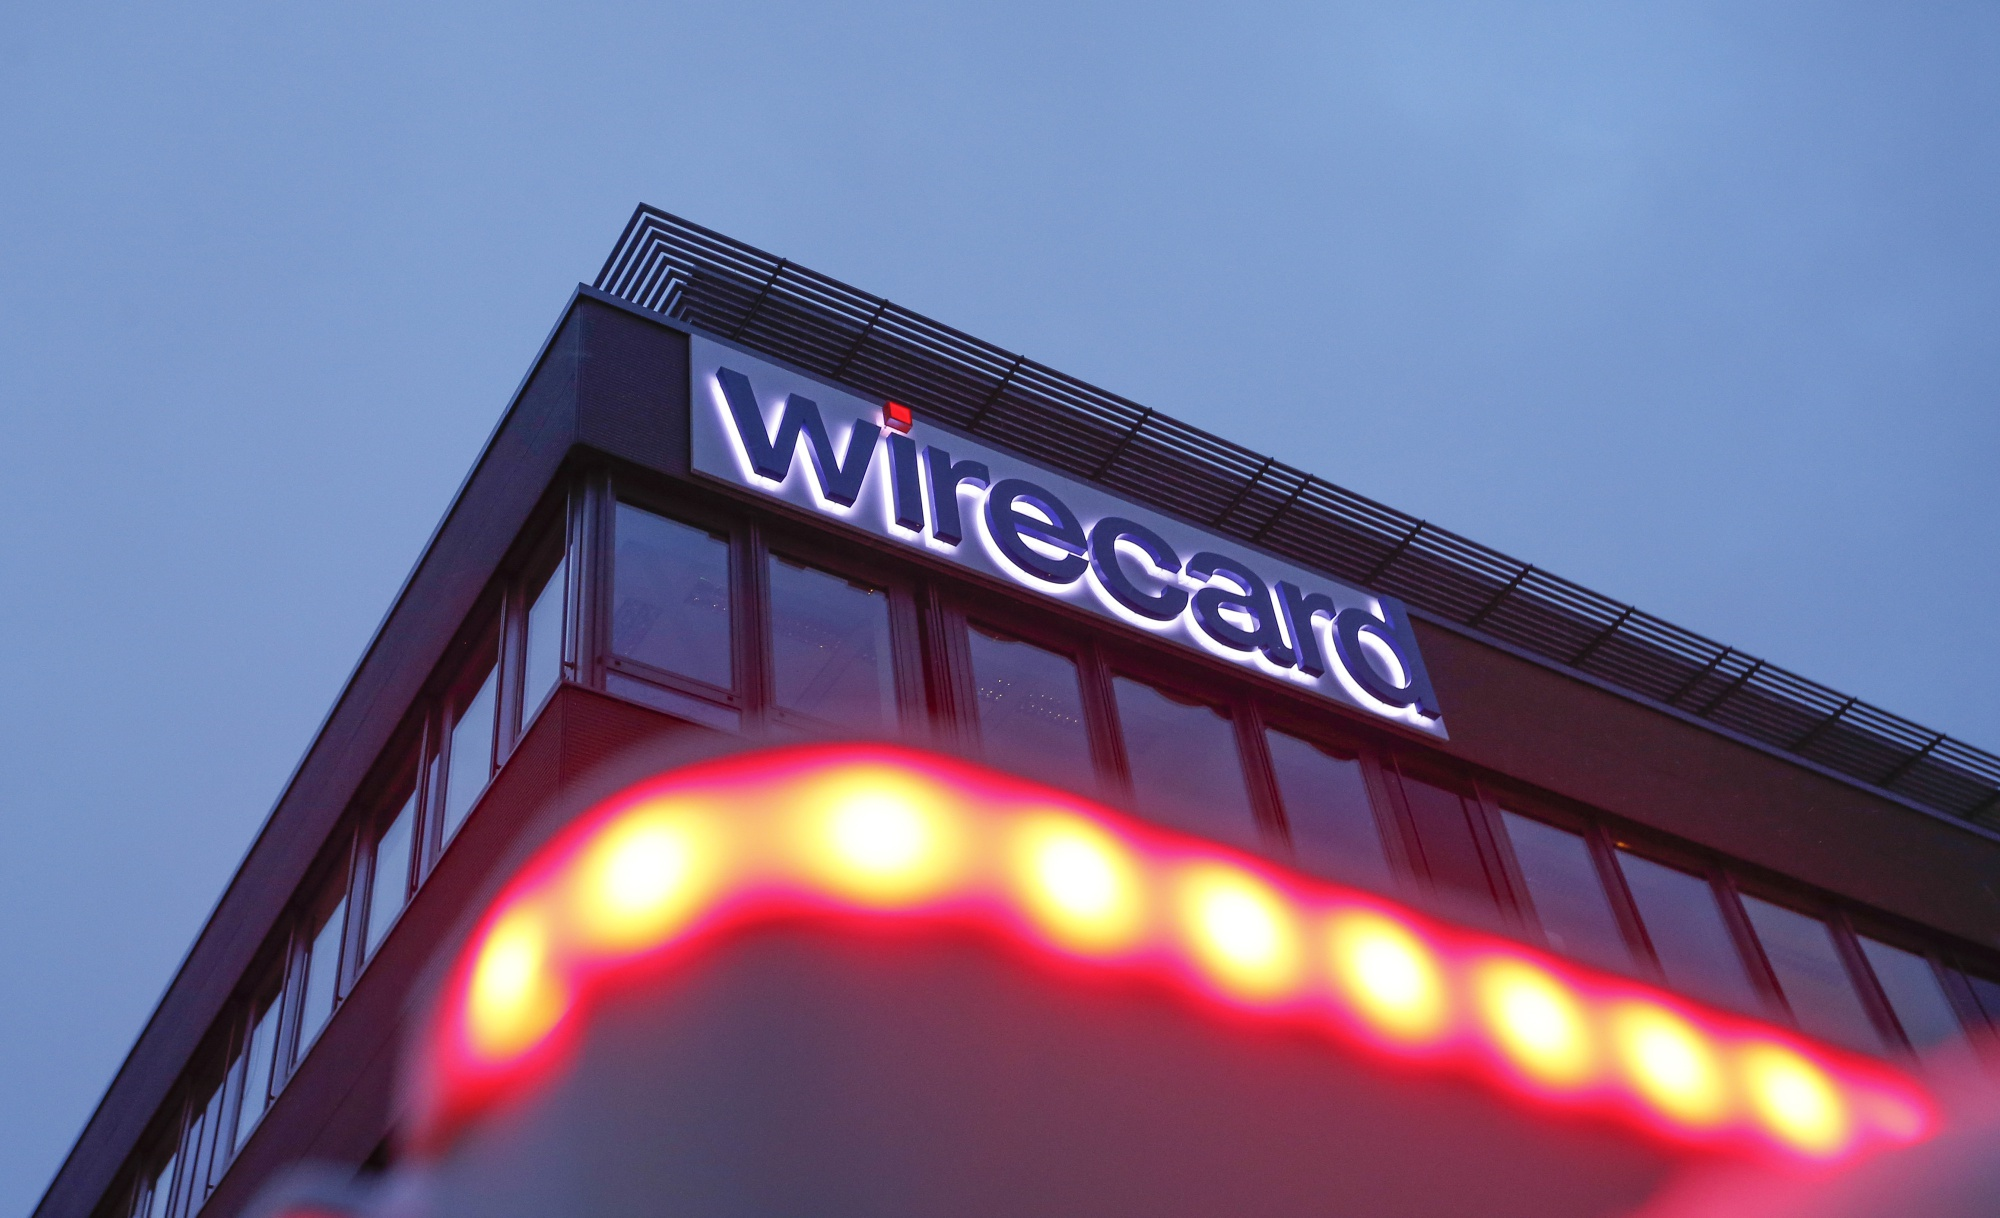 bloomberg.com - Amy Thomson - Wirecard Value Passes Deutsche Bank Again After SoftBank Investment